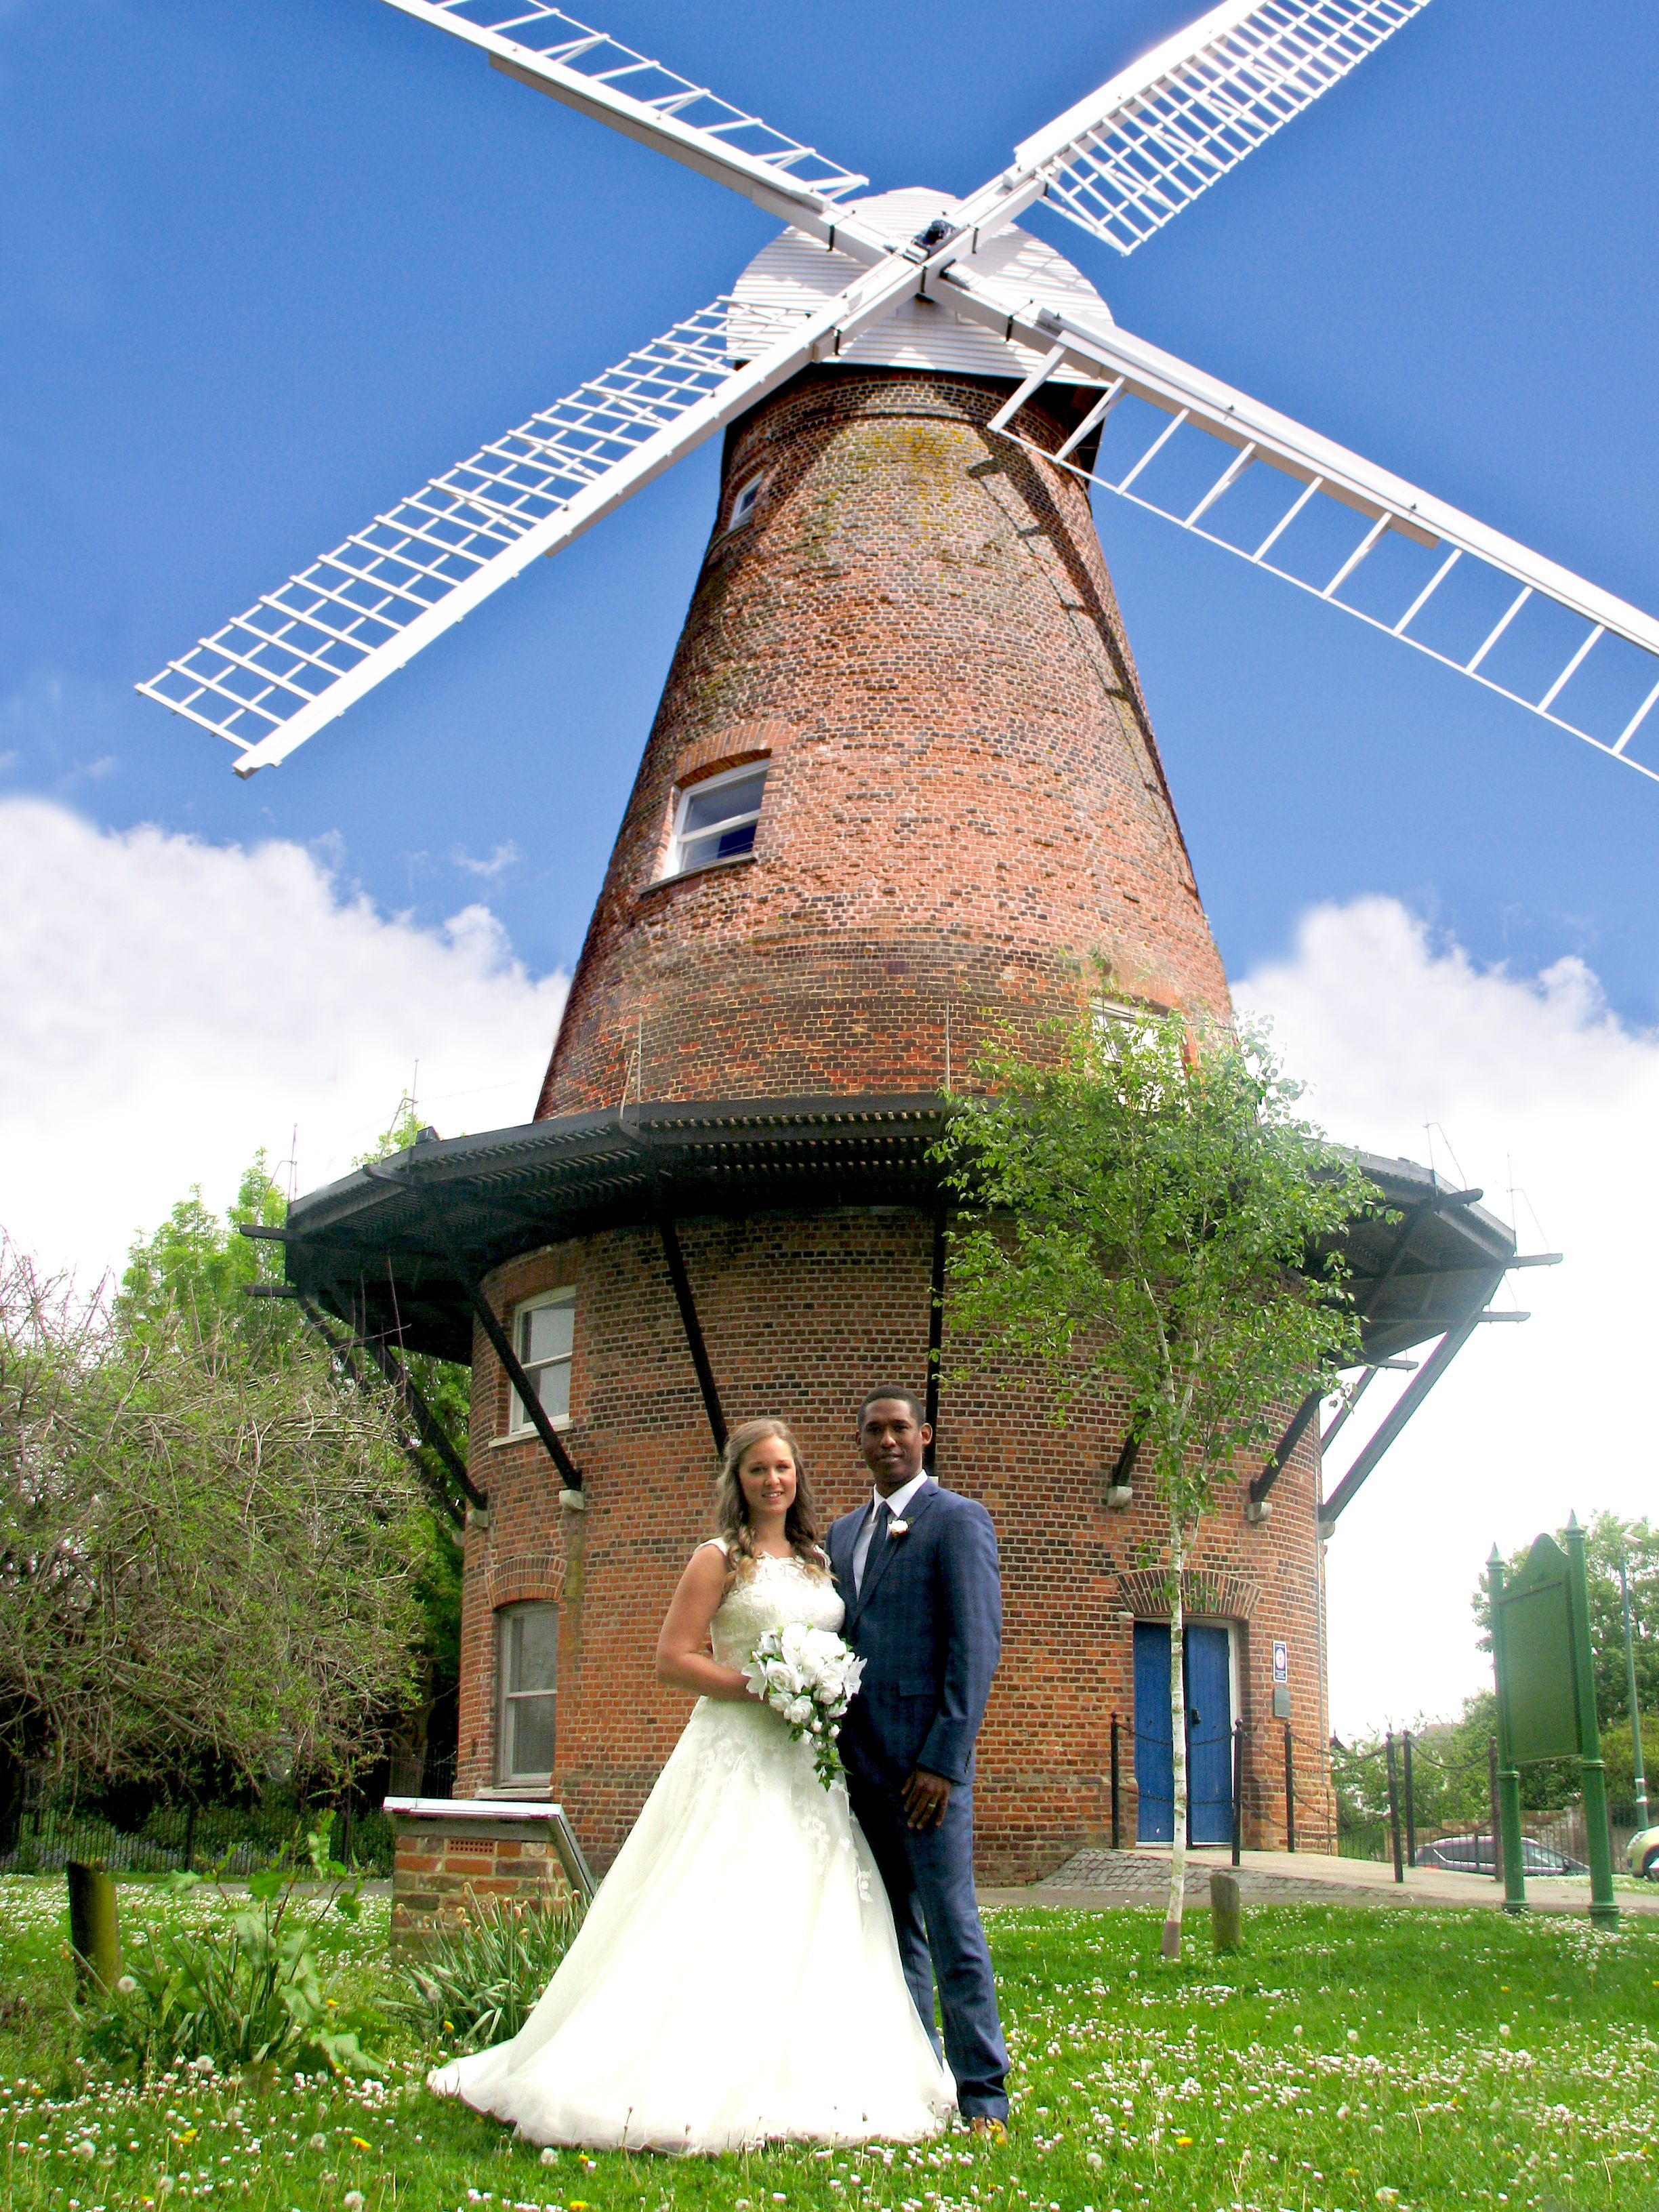 Tuxford windmill wedding invitations